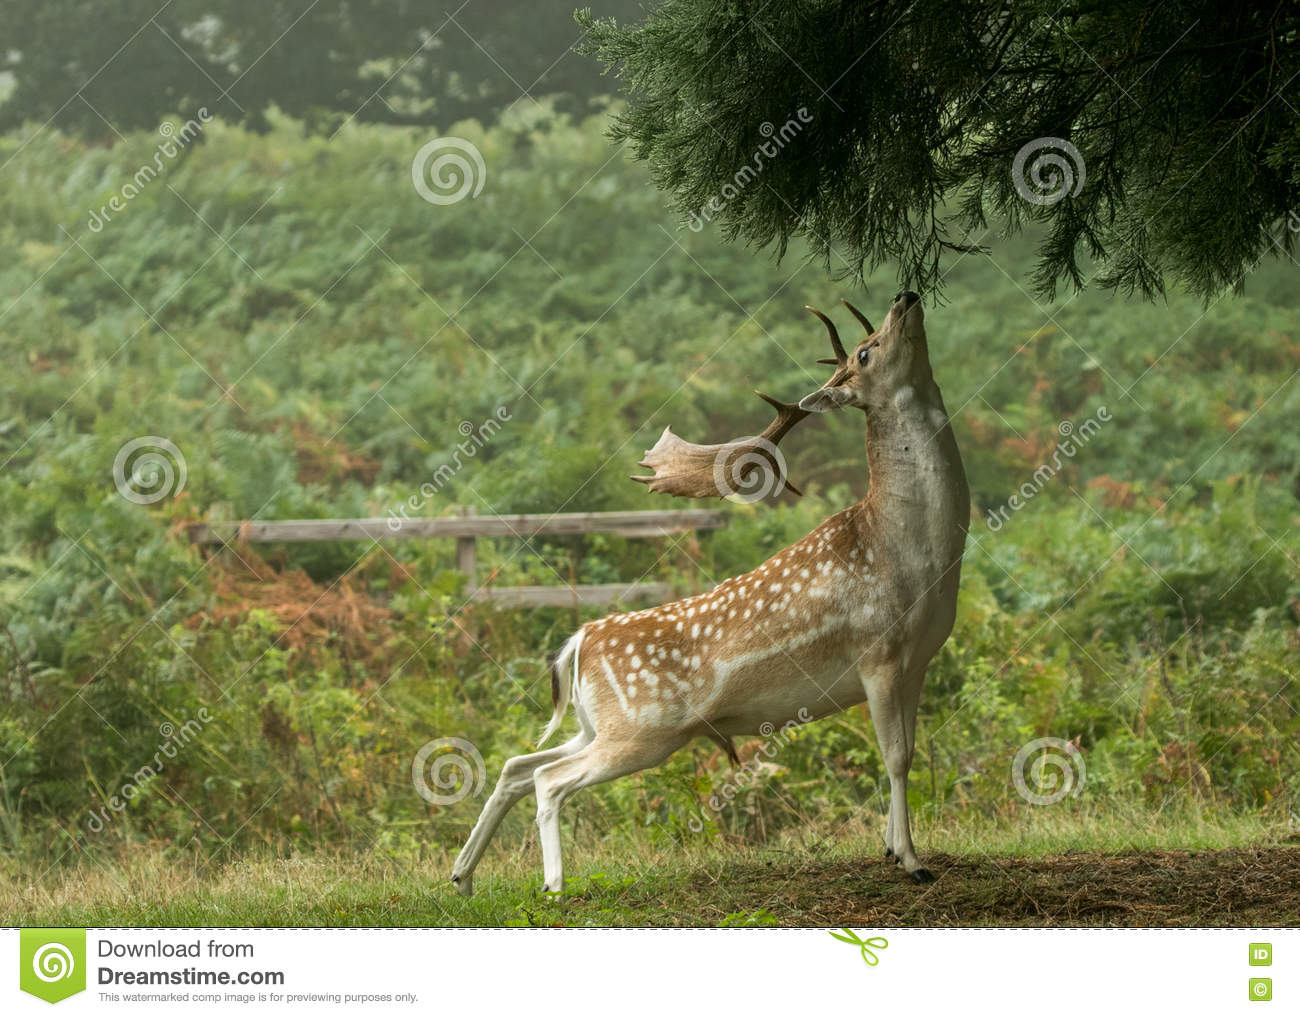 Fallow deer reaching up to eat tree